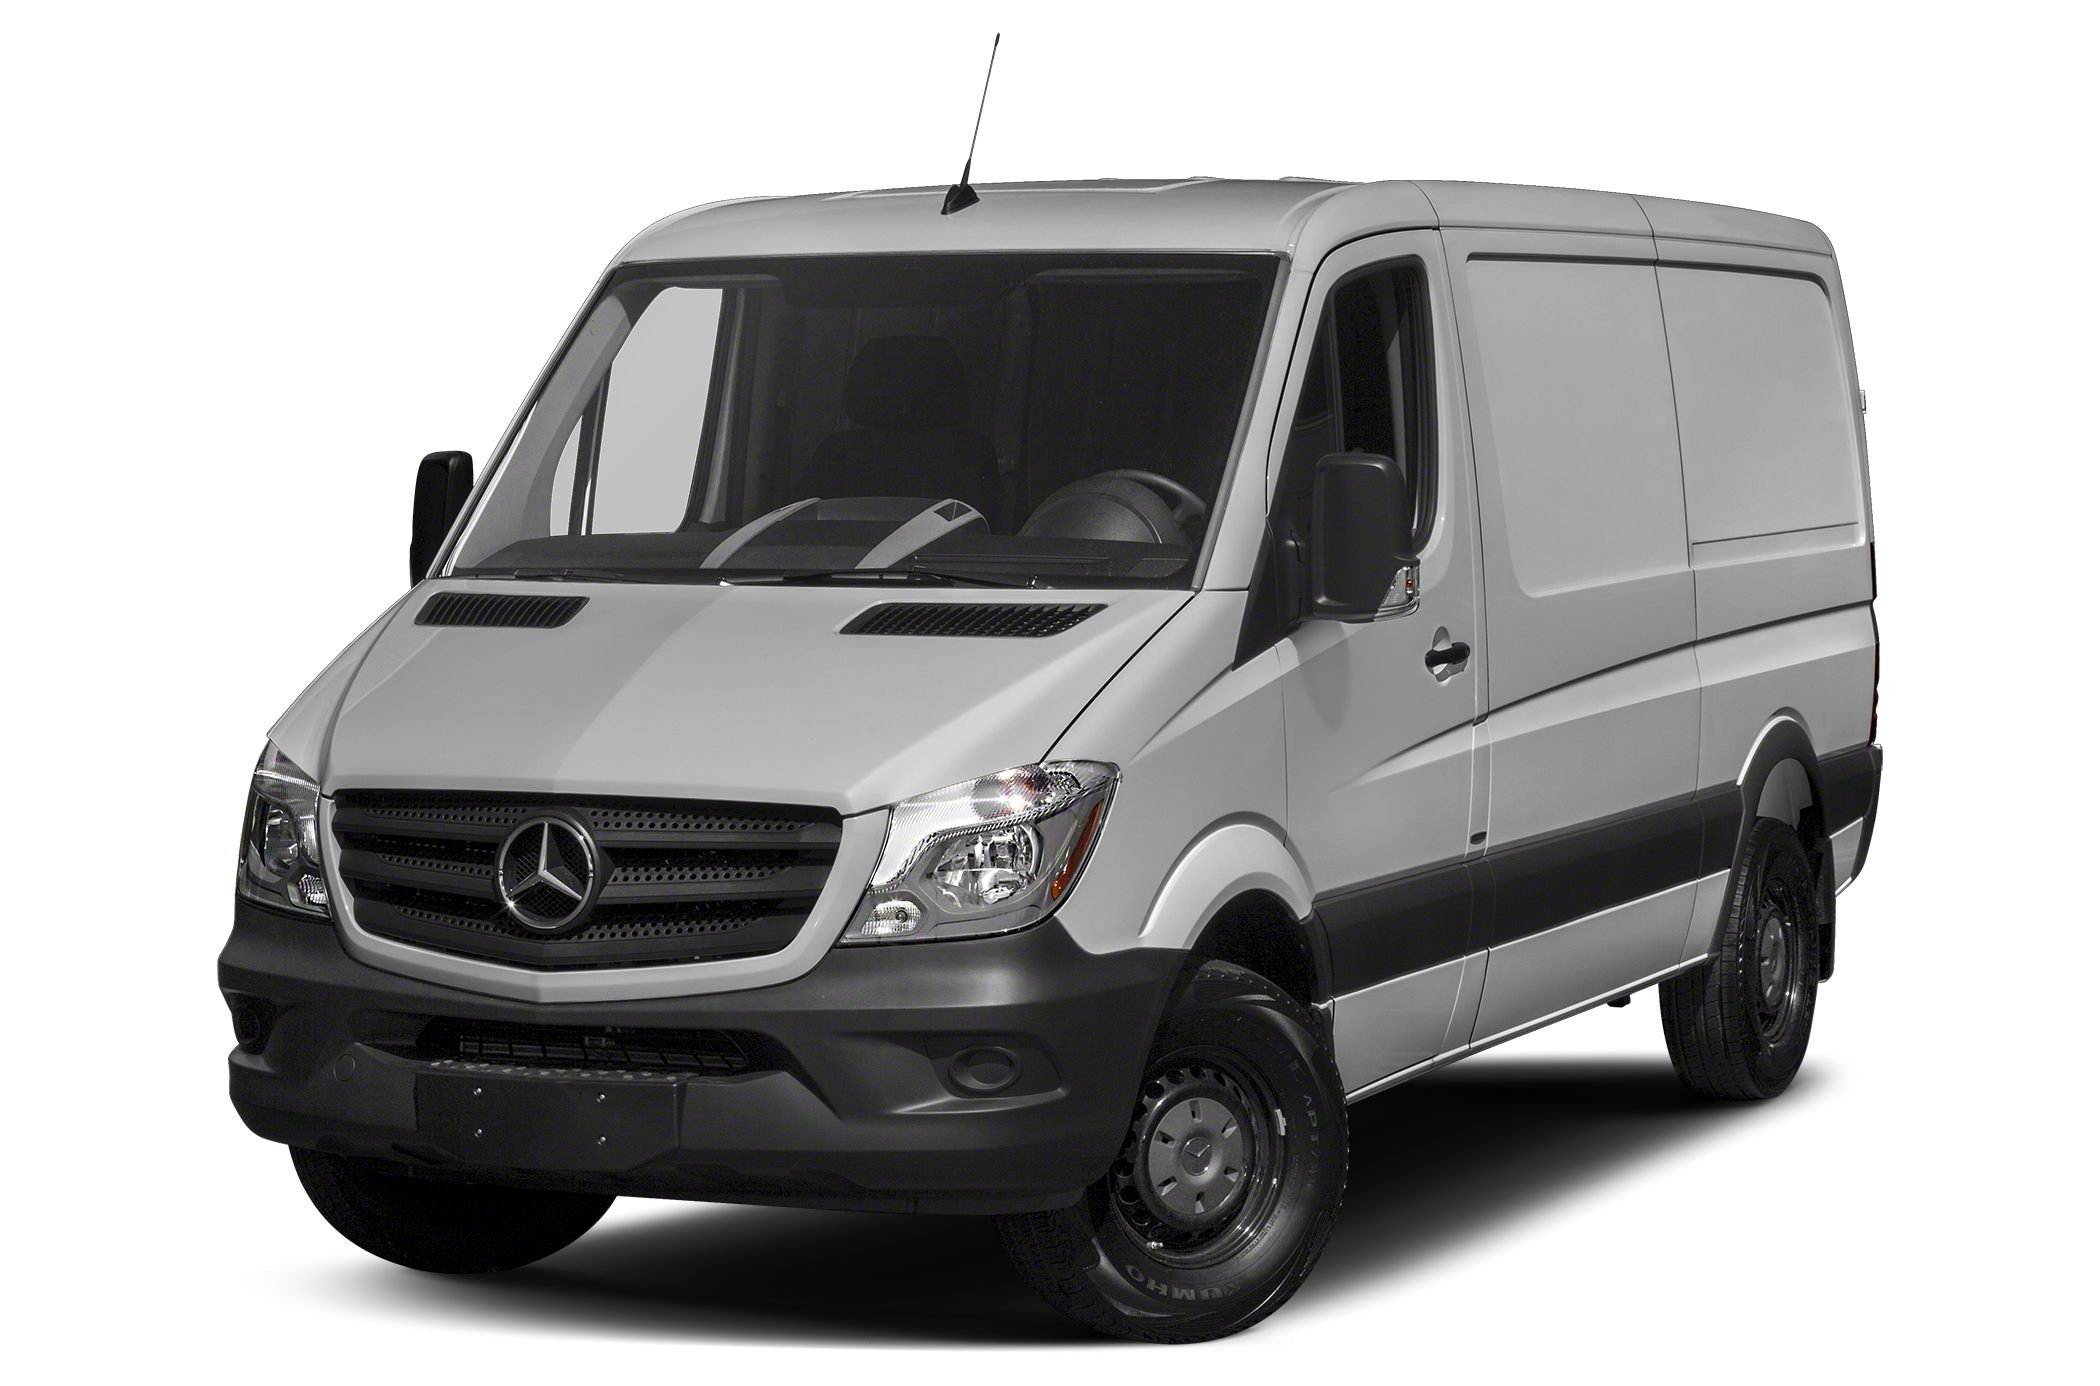 2017 Mercedes Benz 2500 Standard Roof V6 >> 2017 Mercedes Benz Sprinter 2500 Standard Roof V6 Sprinter 2500 4wd Cargo Van 144 3 In Wb Specs And Prices